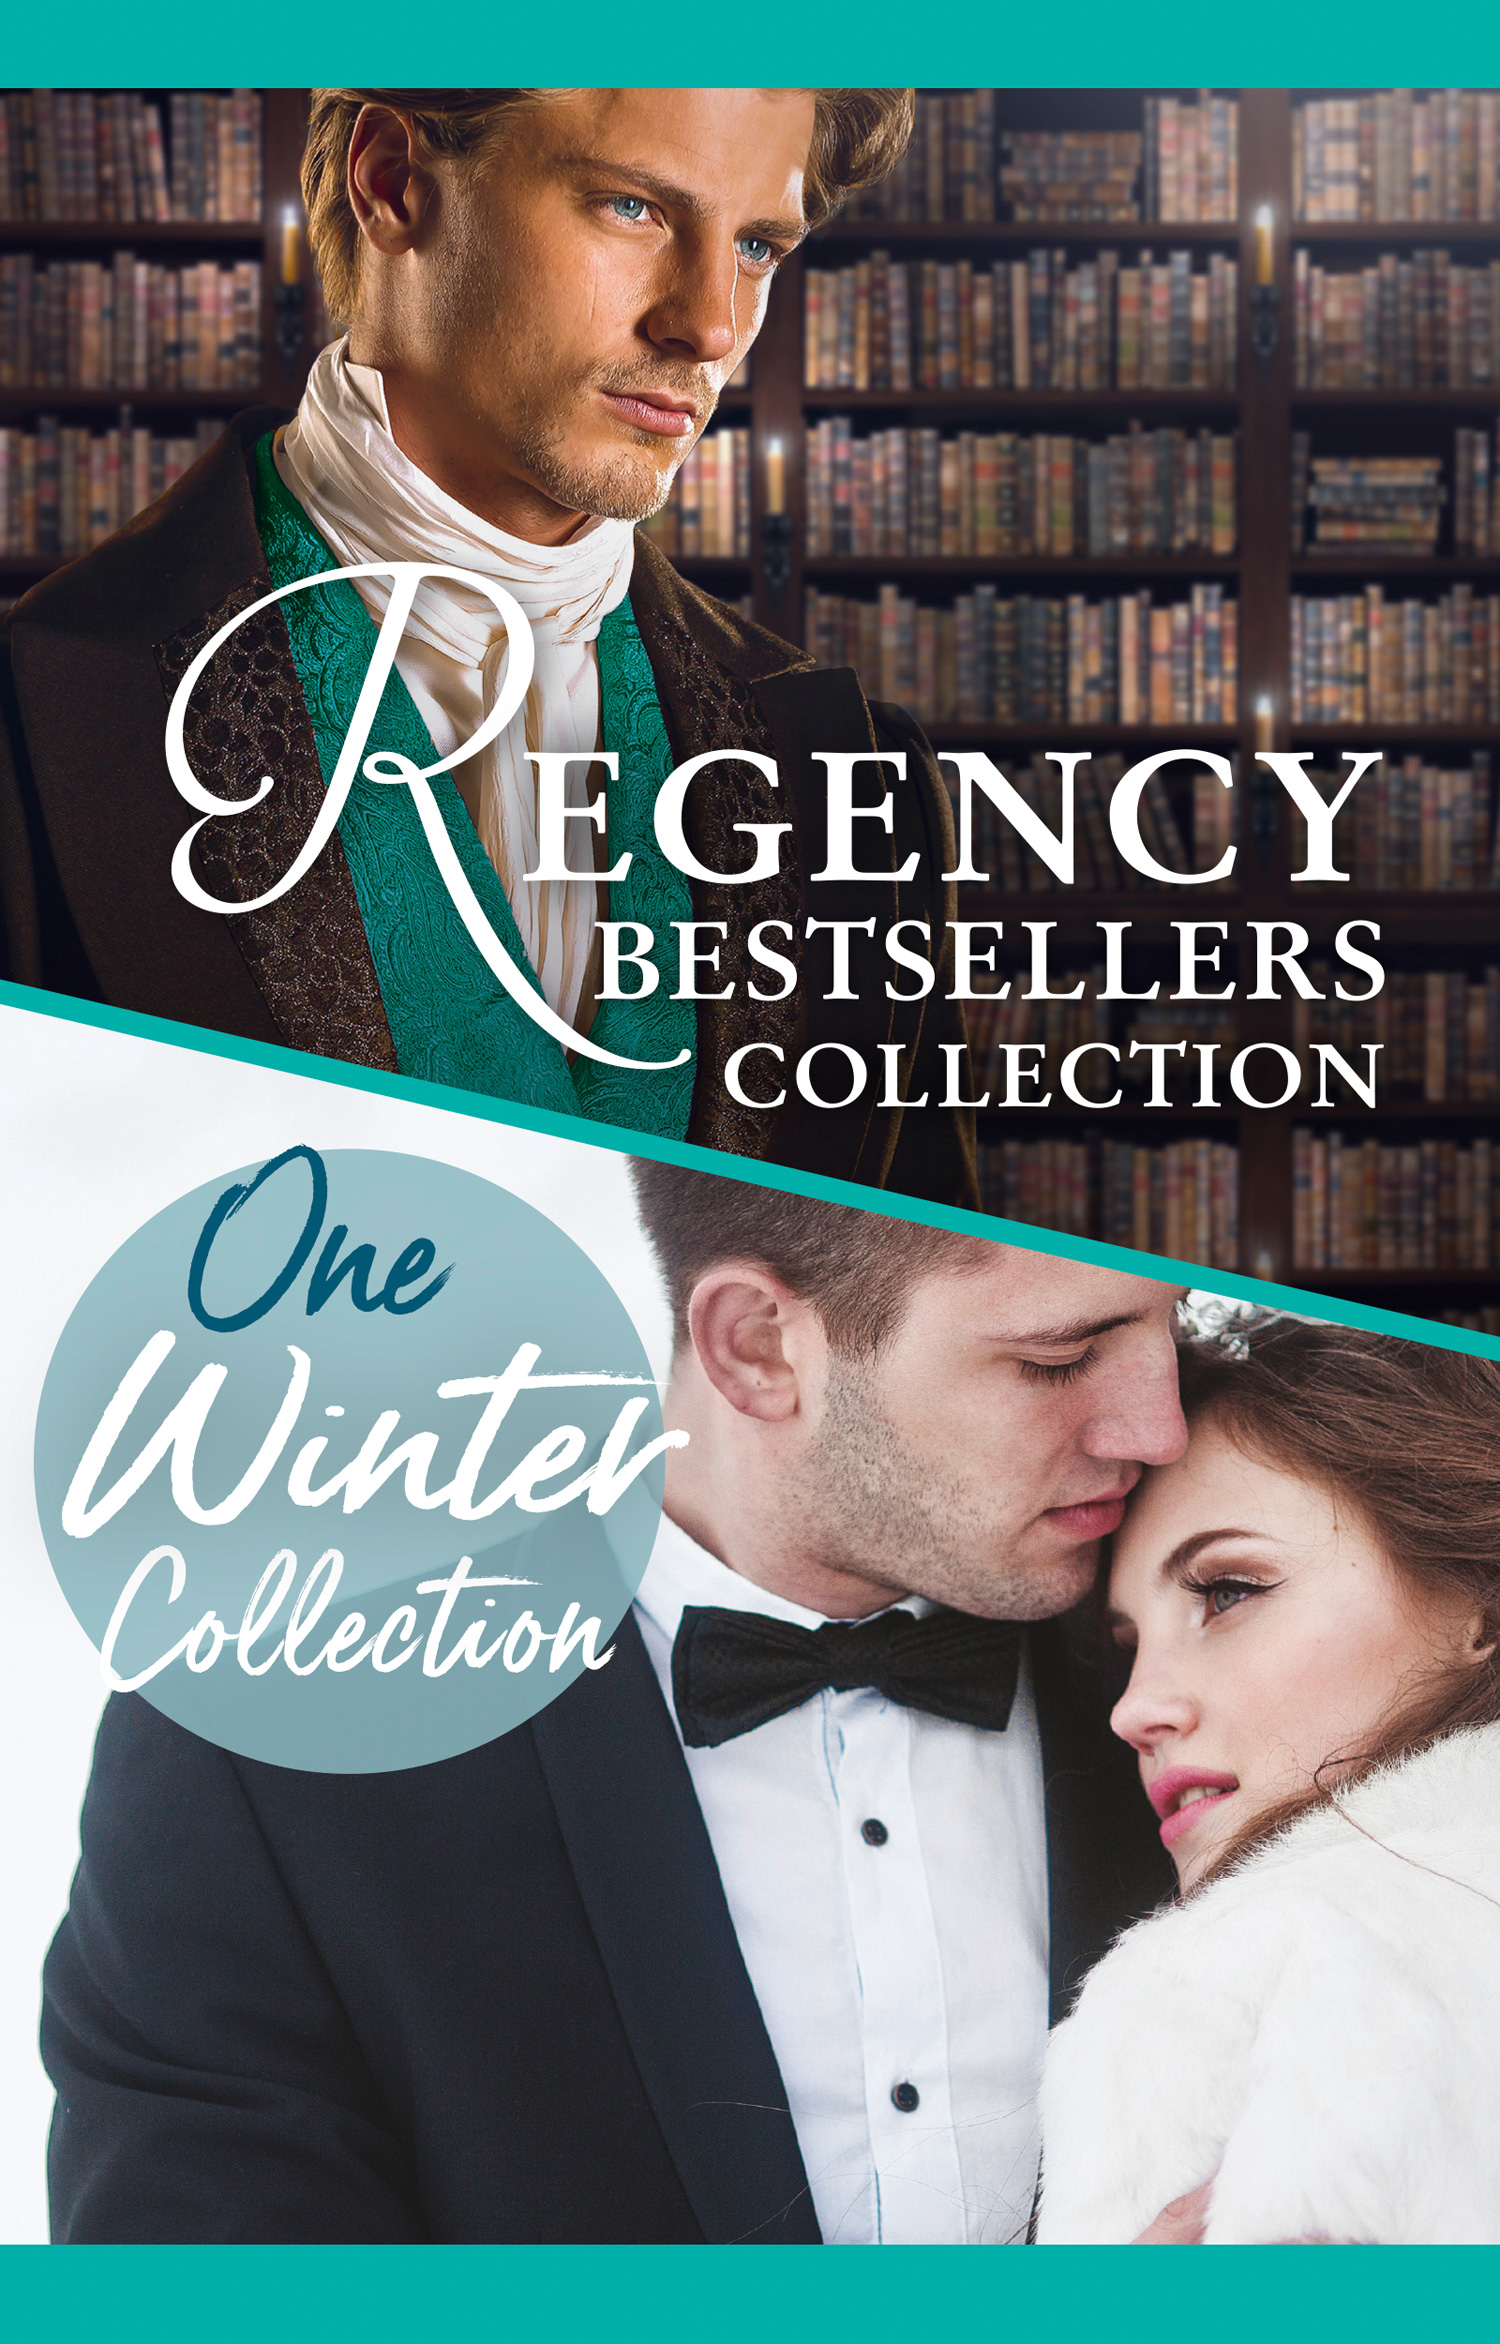 The Complete Regency Bestsellers And One Winters Collection